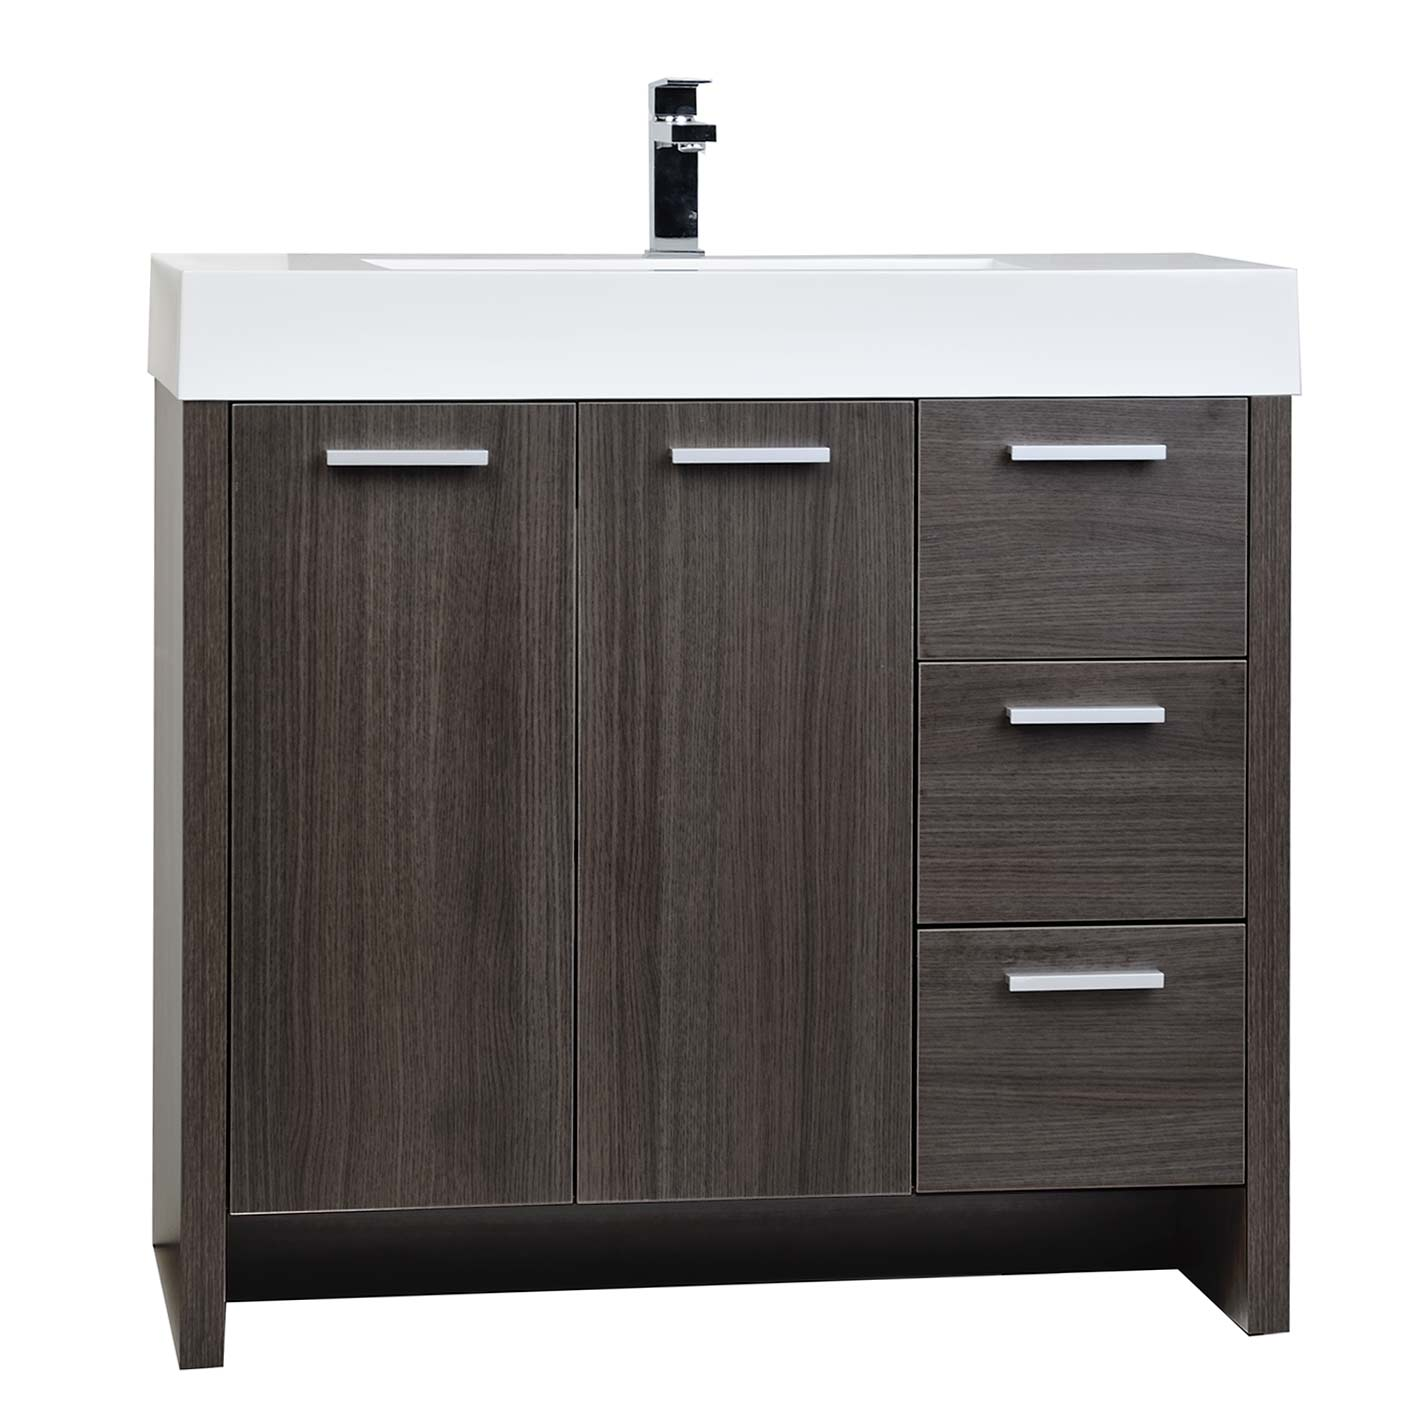 Buy 35 5 Modern Bathroom Vanity Grey Oak Finish Tn Ly900 R Go